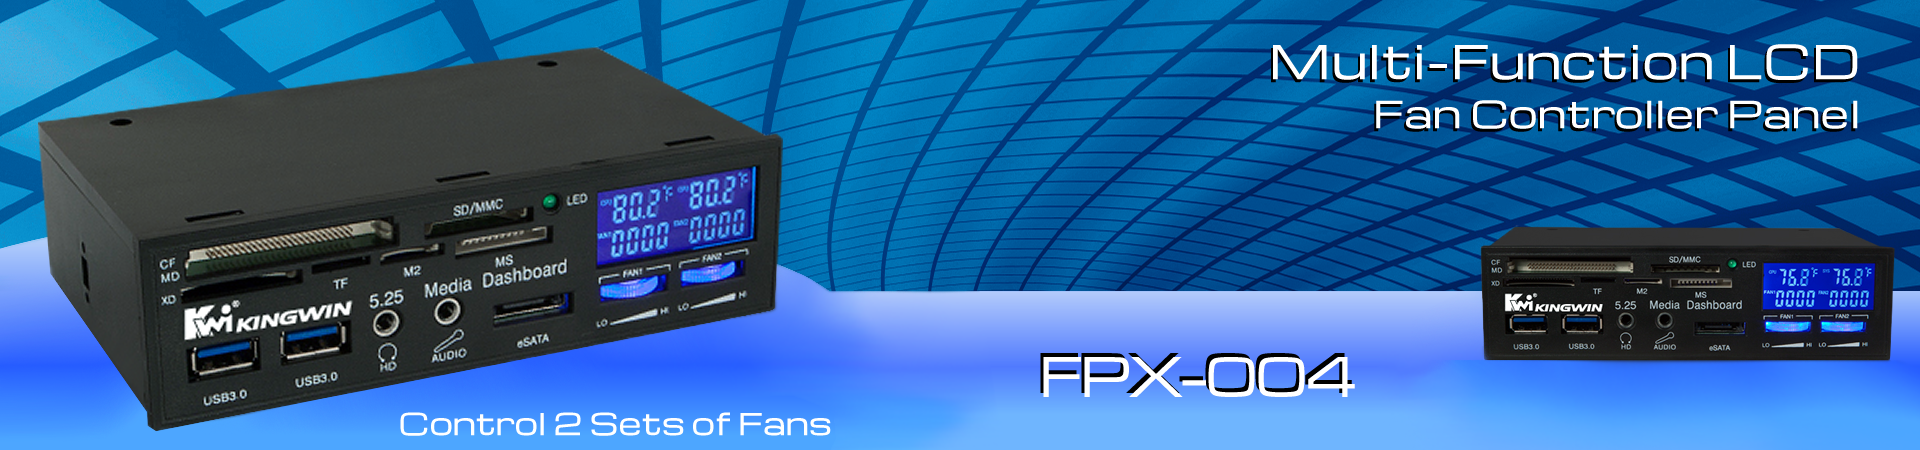 FPX-004-Banner.fw